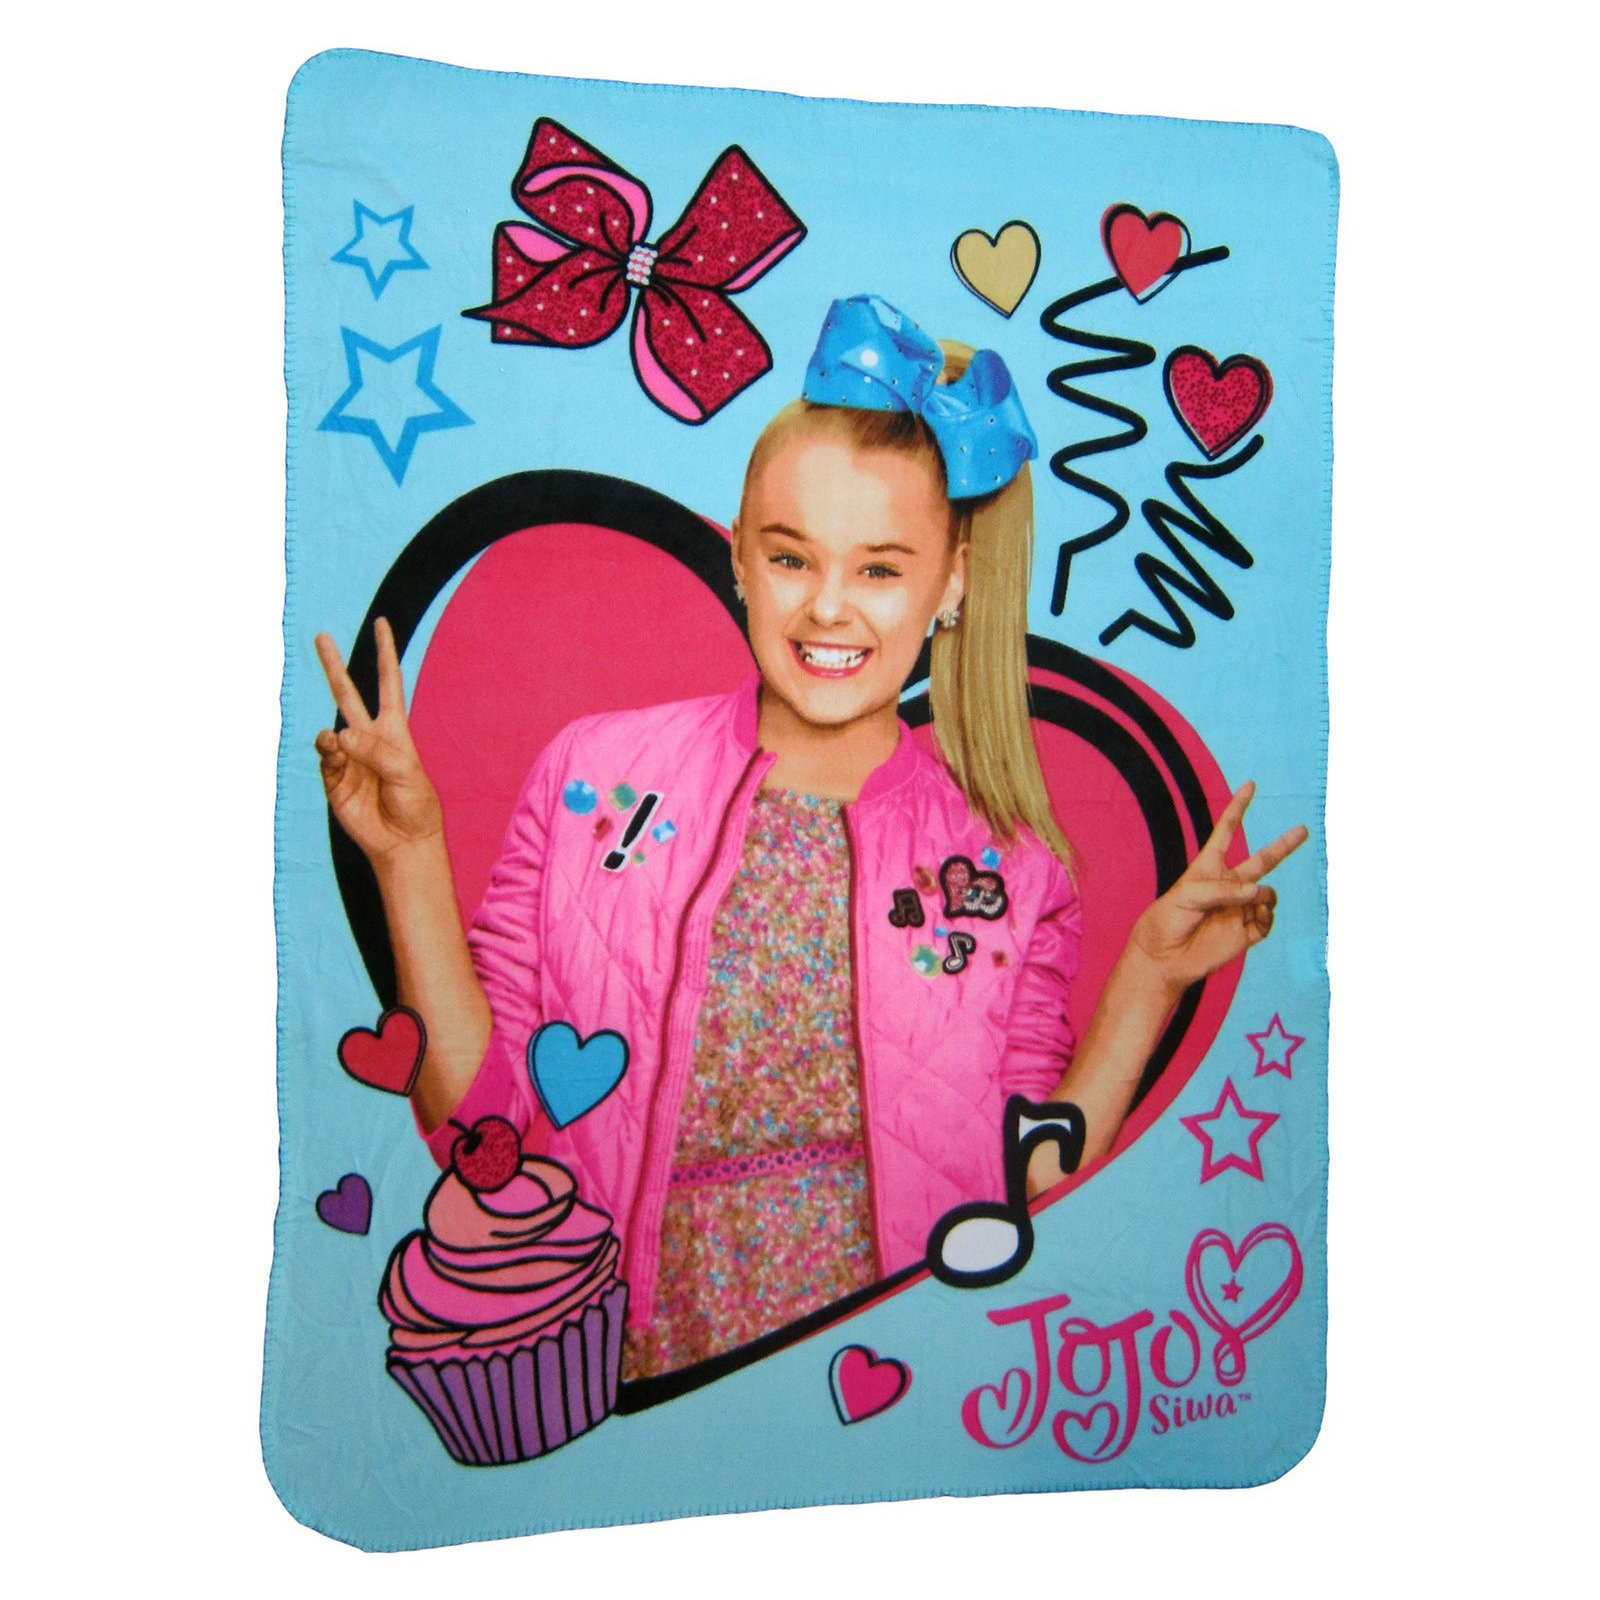 Nickelodeon JoJo Siwa Fleece Throw Blanket Kids Home Decor 45 x 60 Inch